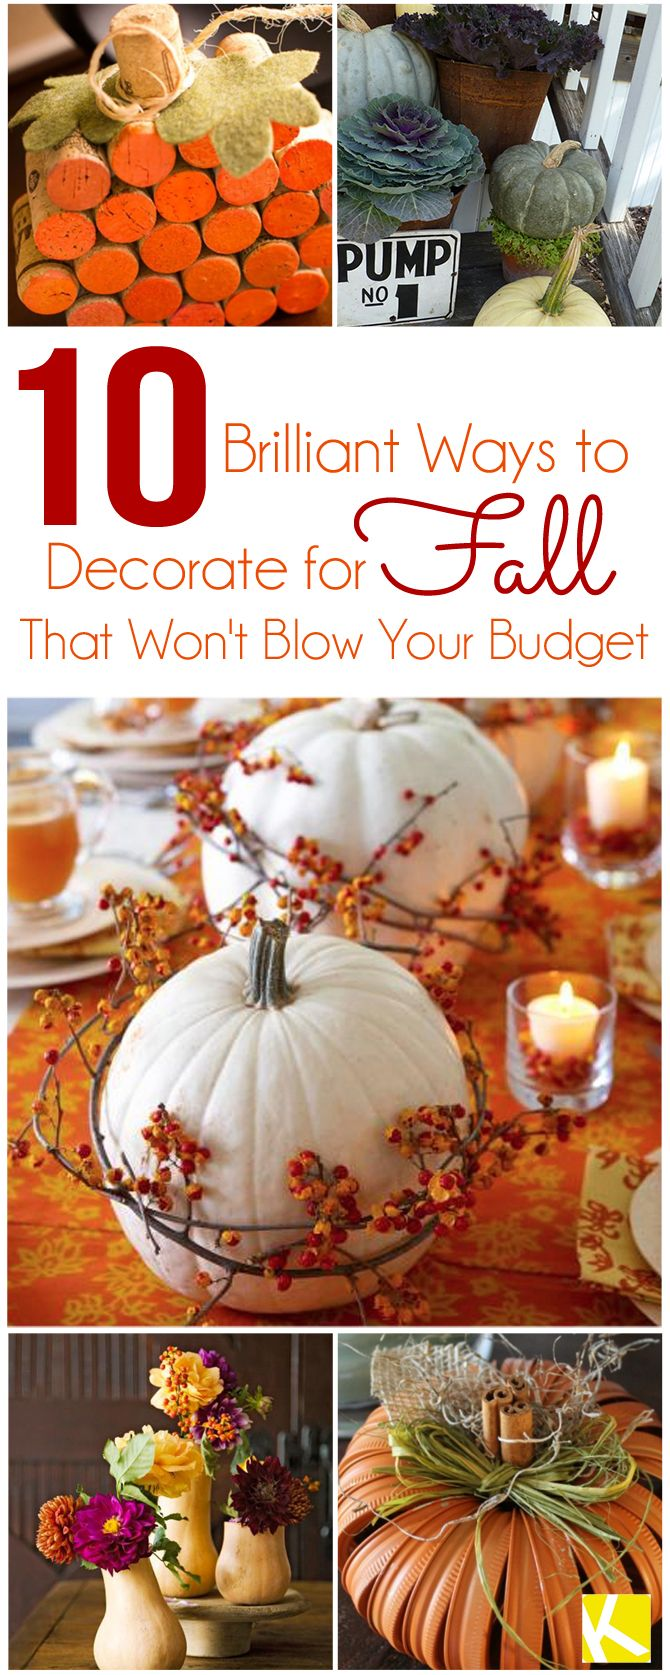 September Decorating Ideas Fair 10 Brilliant Ways To Decorate For Fall That Won't Blow Your Budget . Decorating Design